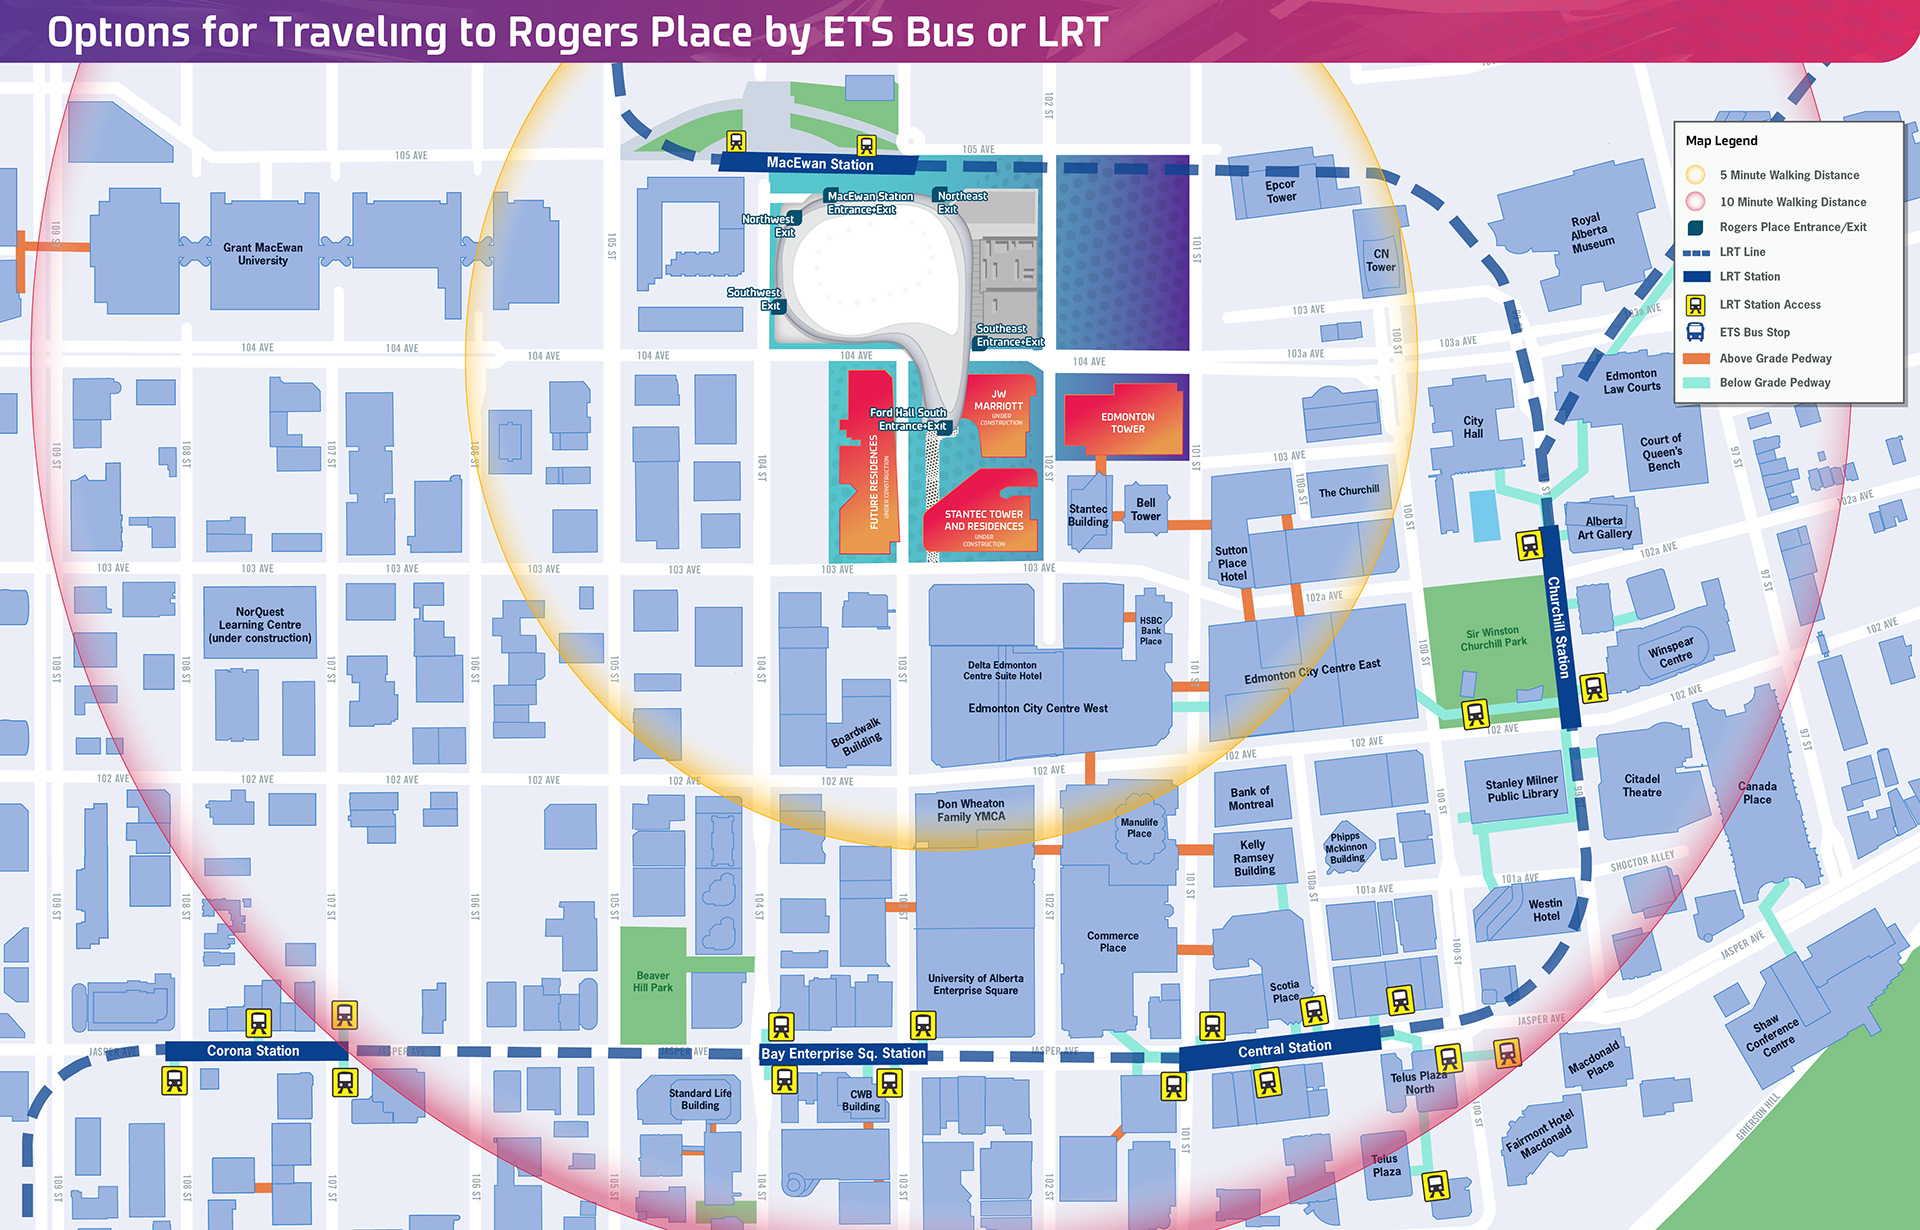 Getting To Rogers Place Transit - Map out walking distance